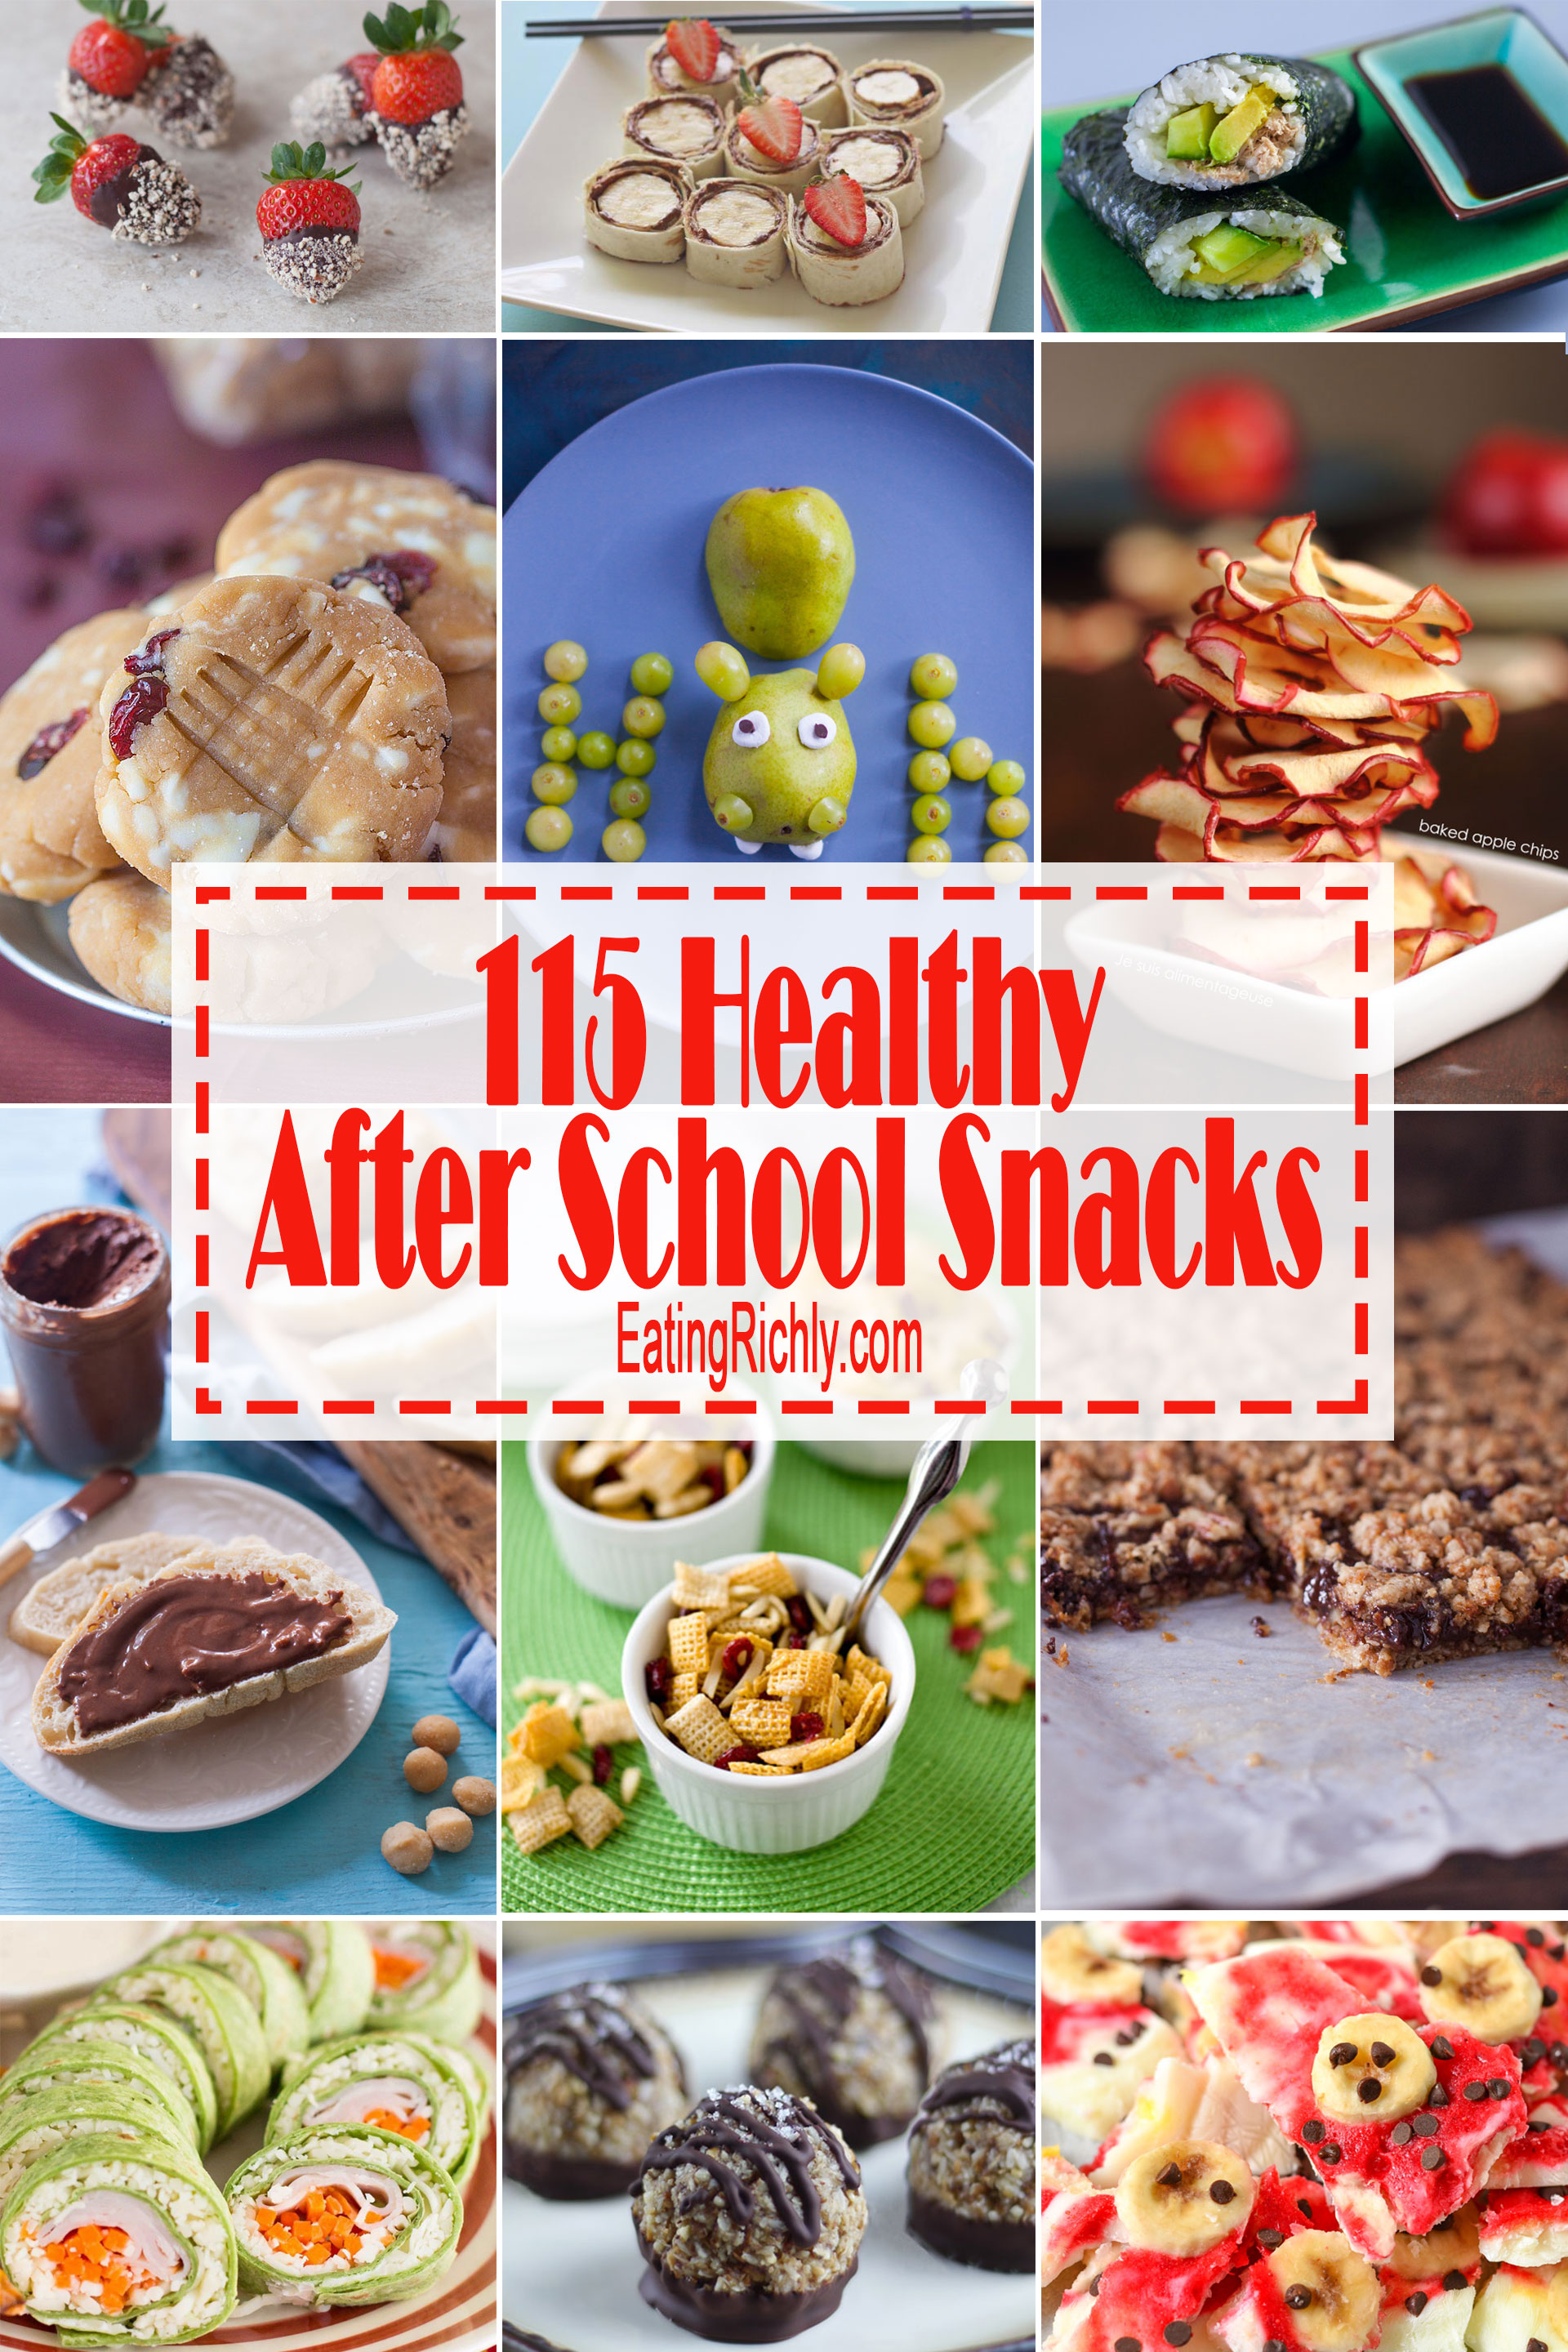 2 Healthy Snacks to Appease Your Sweet Tooth